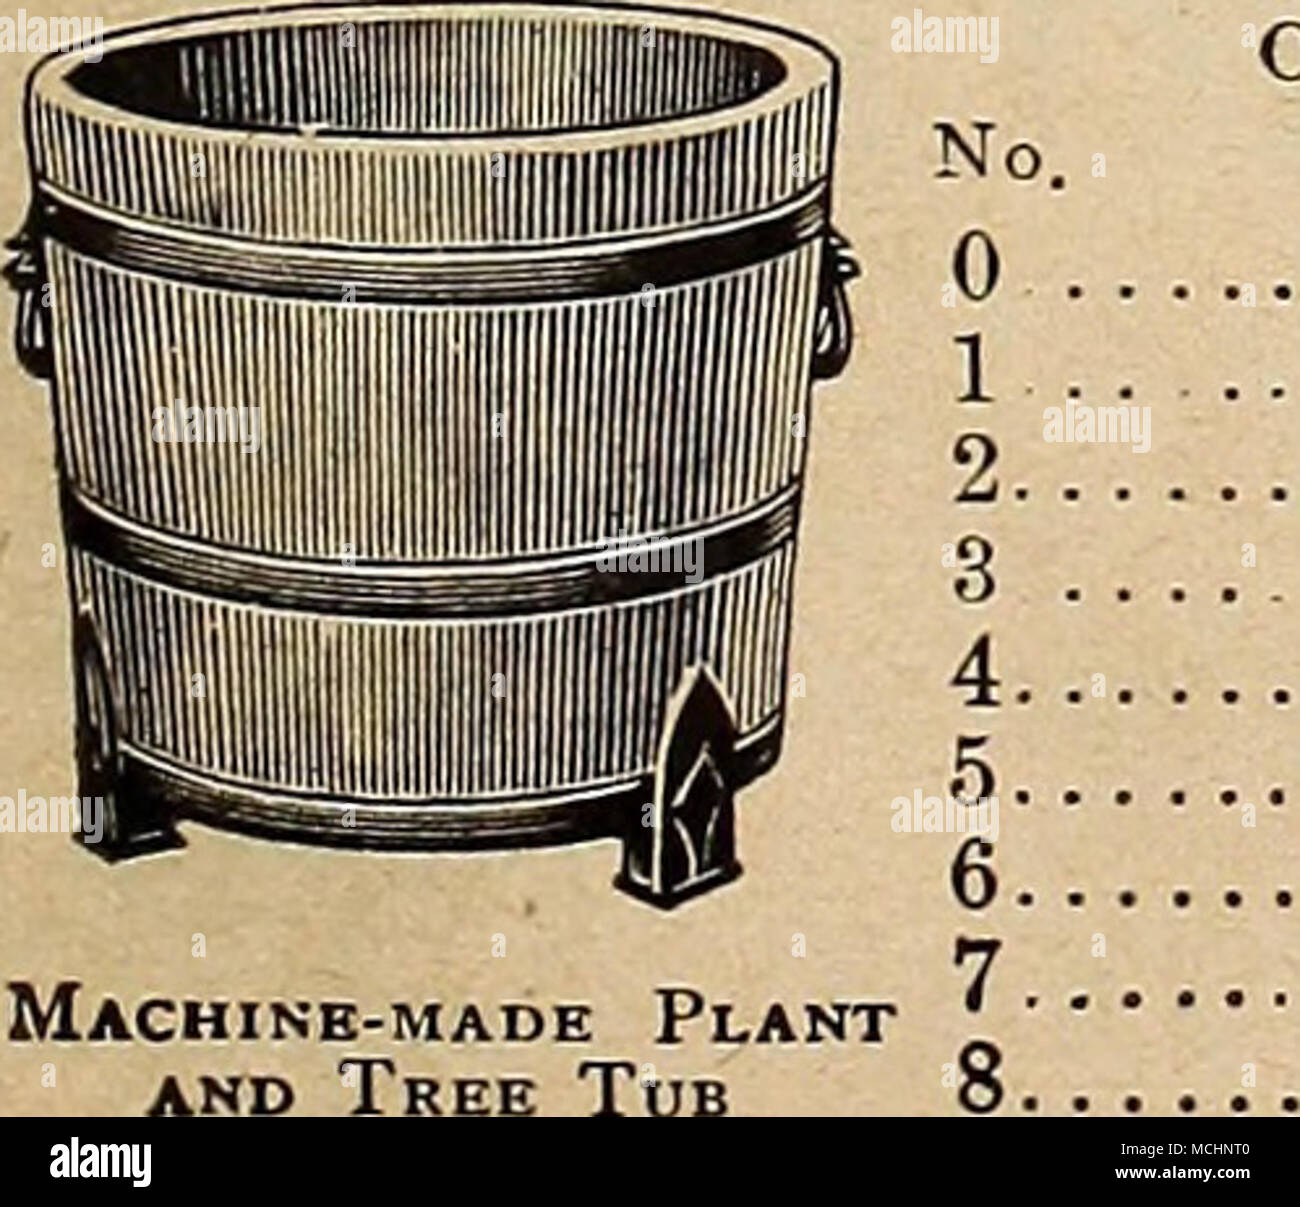 Machinb-made Plant AND Tree Tub Outside No. Diam. 0 27 in. , 25 ...